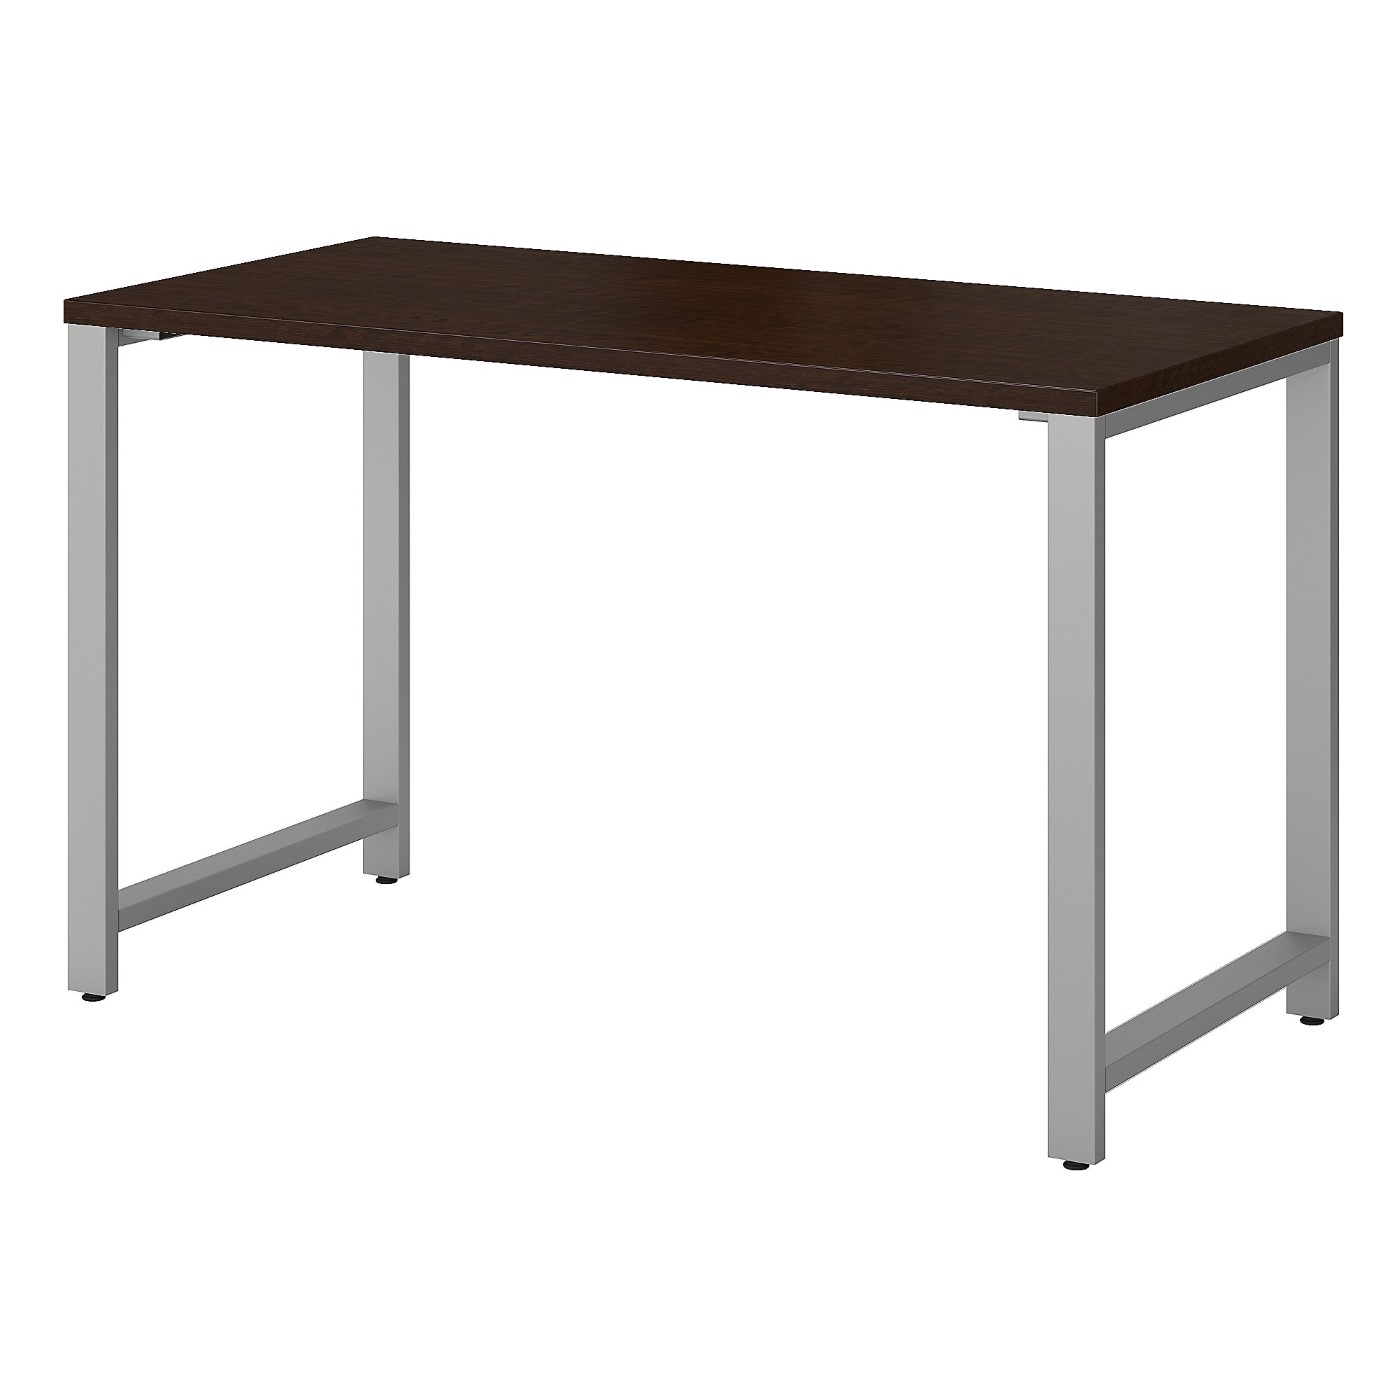 BUSH BUSINESS FURNITURE 400 SERIES 48W X 24D TABLE DESK WITH METAL LEGS. FREE SHIPPING